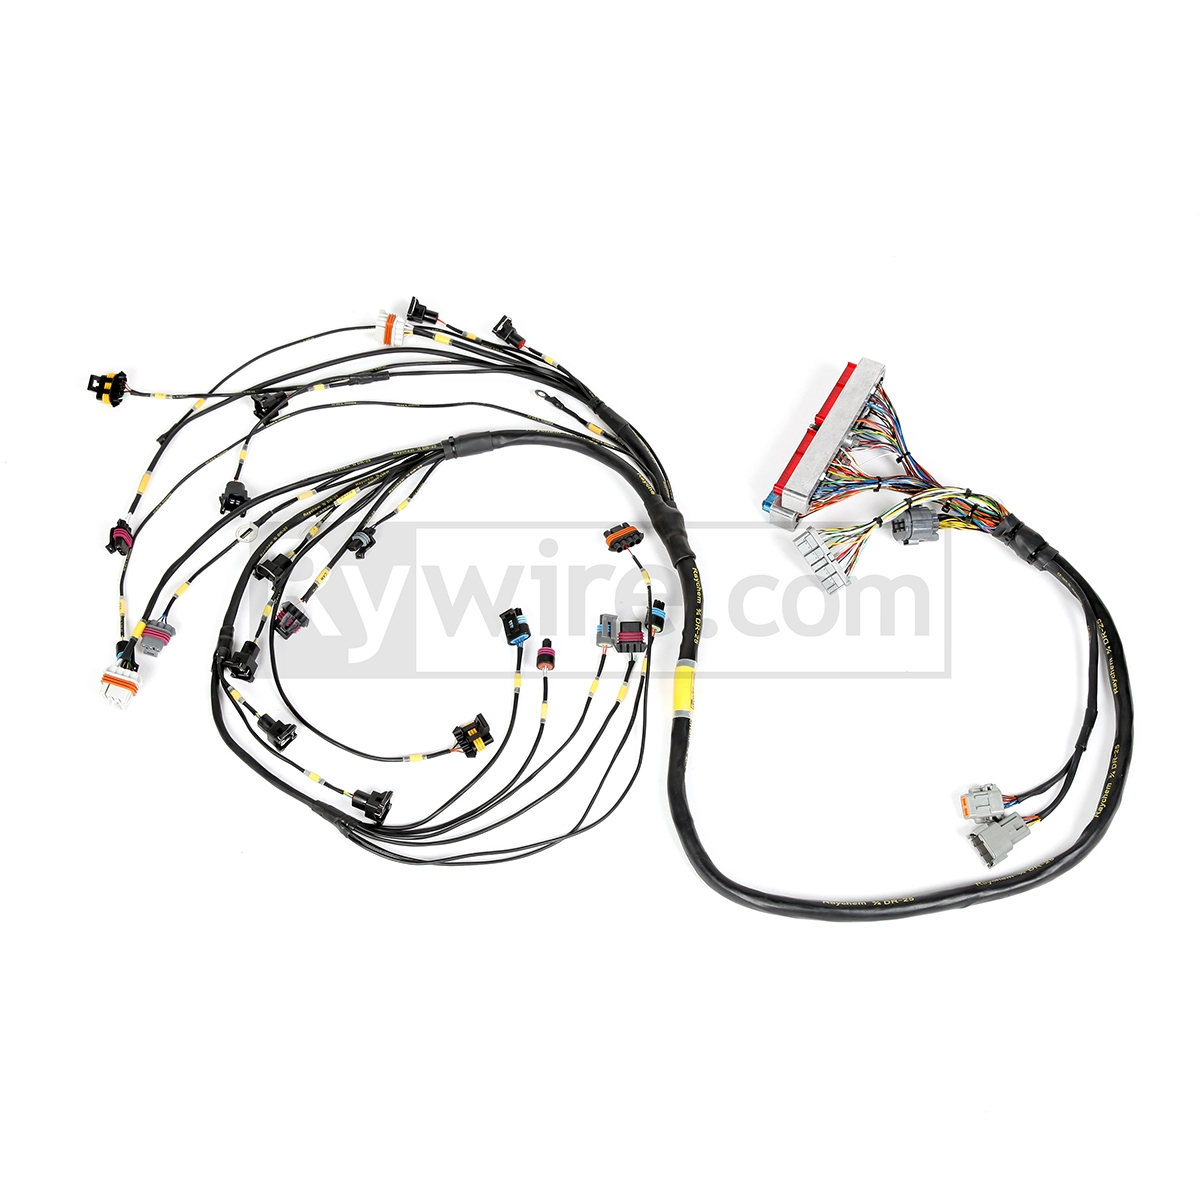 ls1 milspec 2?1403109648 rywire com ls1 mil spec tuck engine harness e46 ls1 wiring harness at readyjetset.co